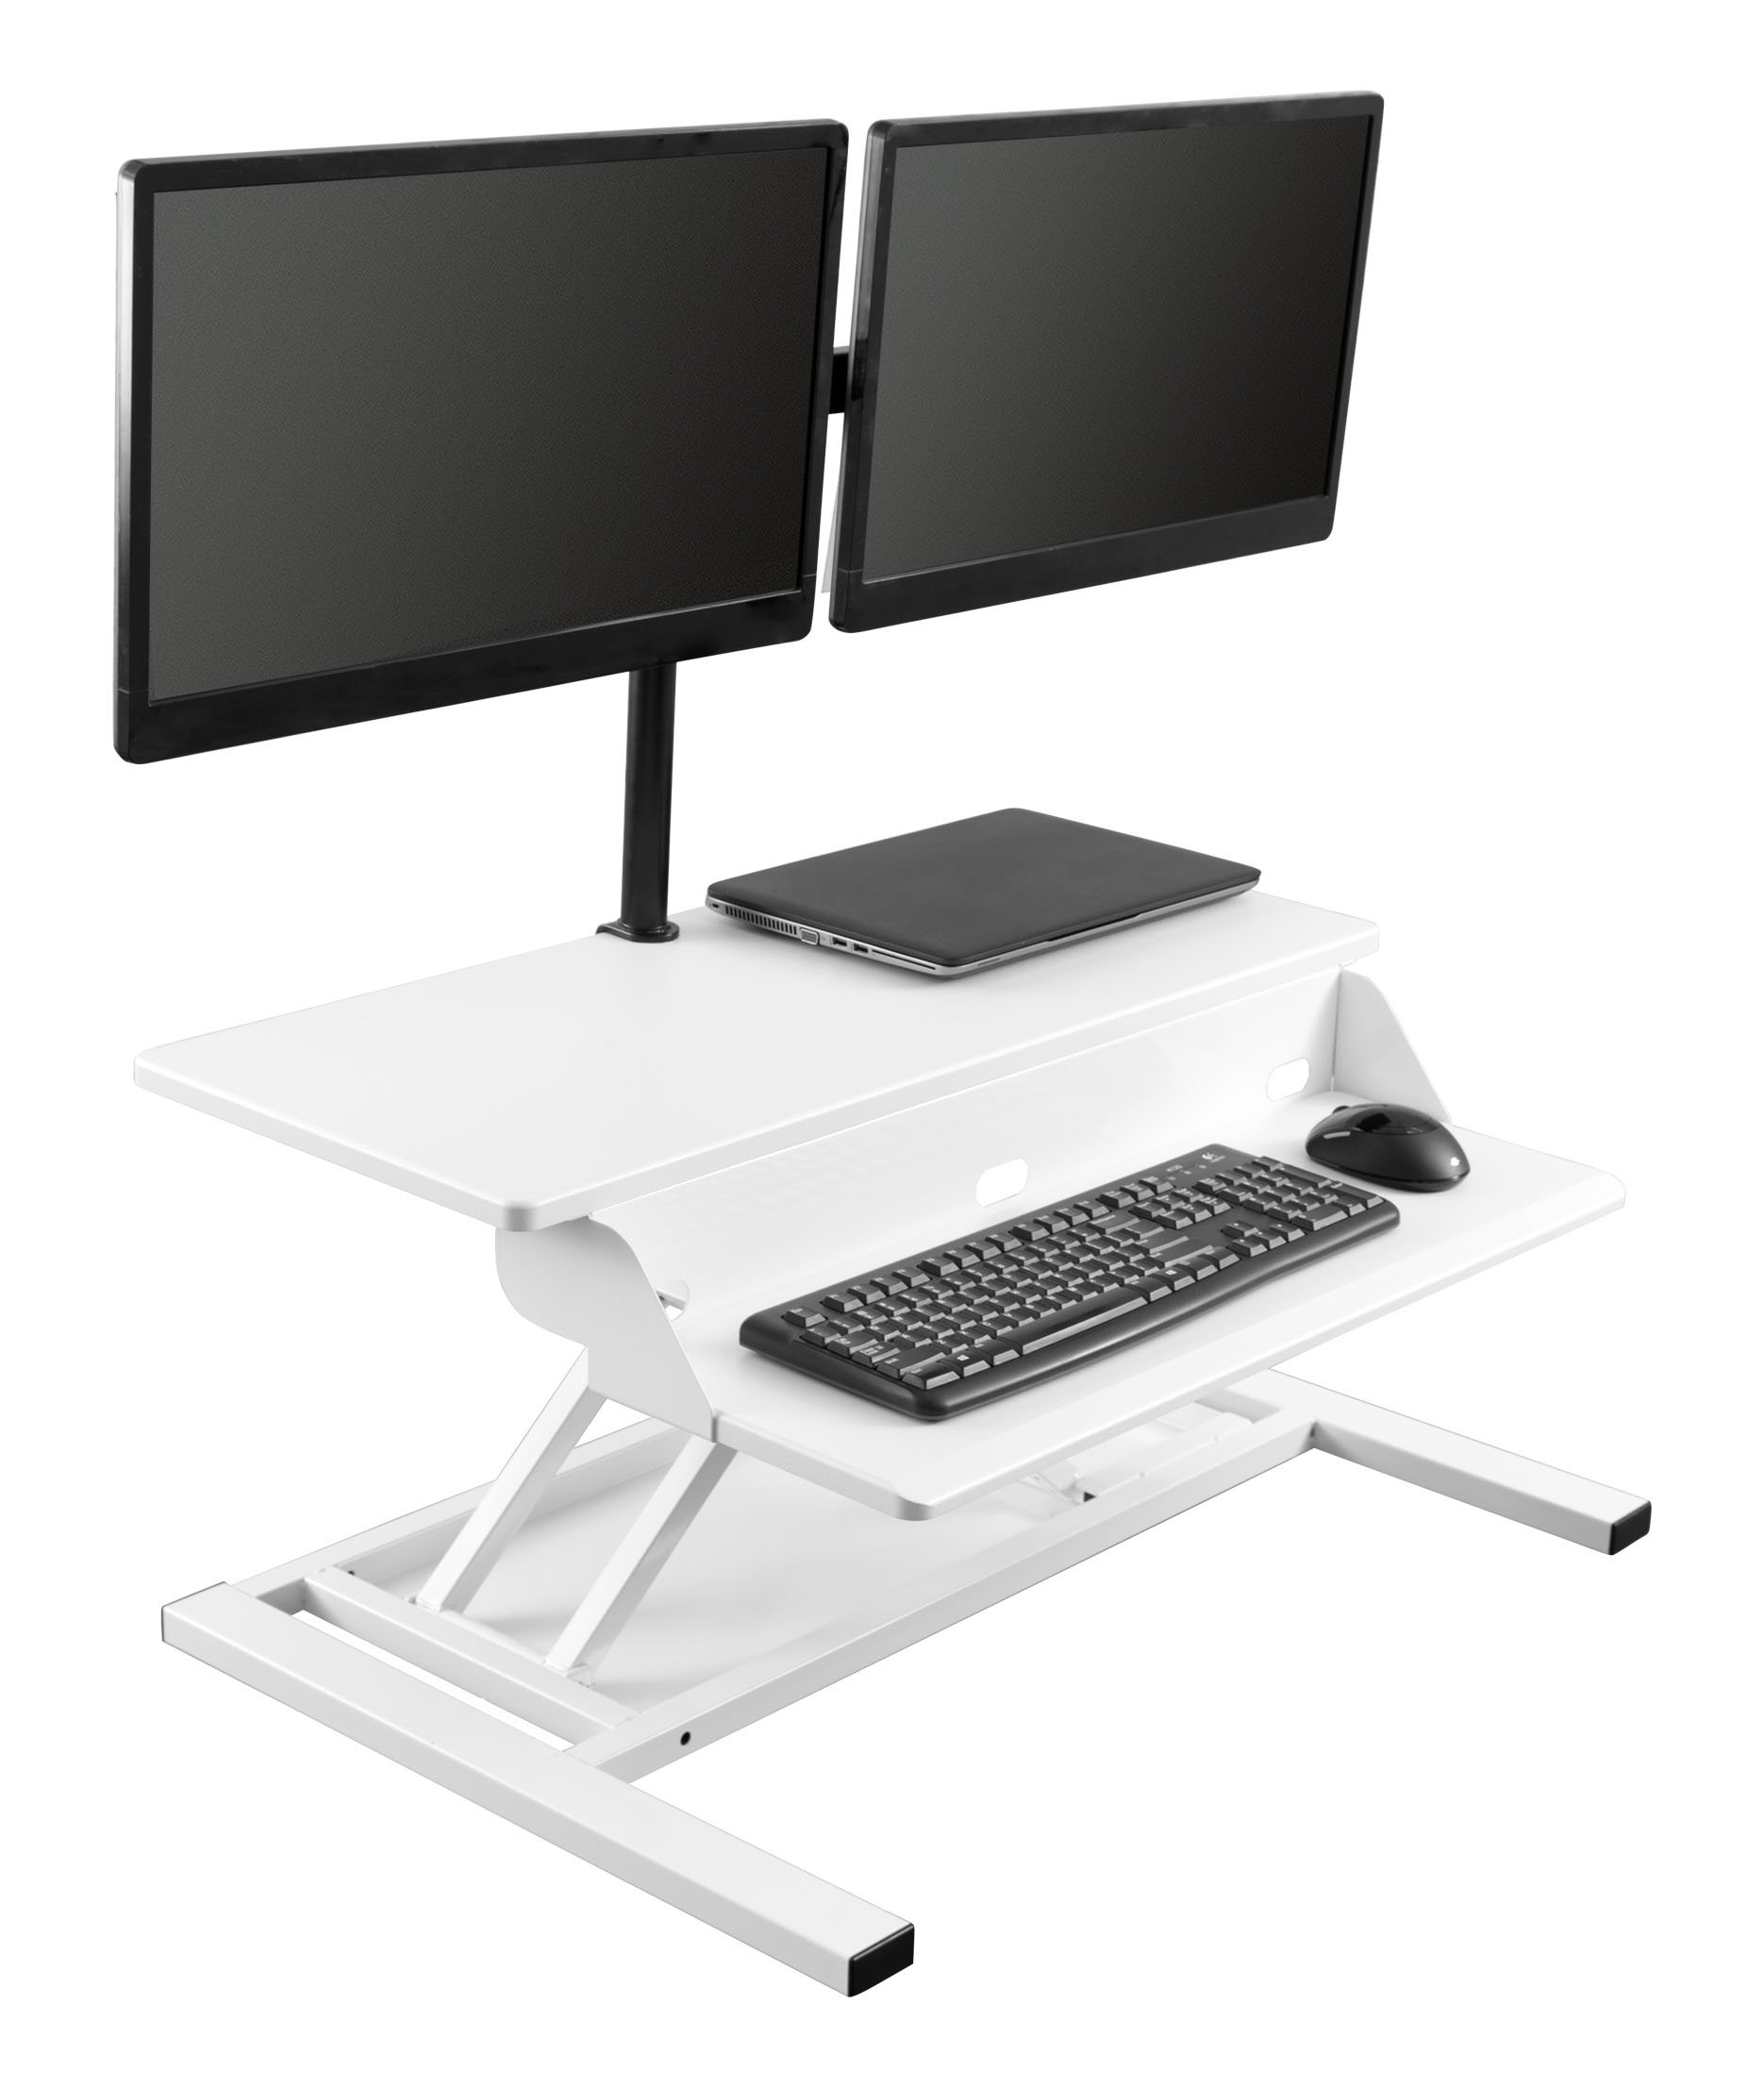 Stand Up Desk Store AirRise Pro - Adjustable Standing Desk Converter with Dual Monitor Mount | Height Adjustable Desk - Turns Any Desk Into a Standing Desk, 32'', Up to 24'' Monitors, Black (32'', White) by Stand Up Desk Store